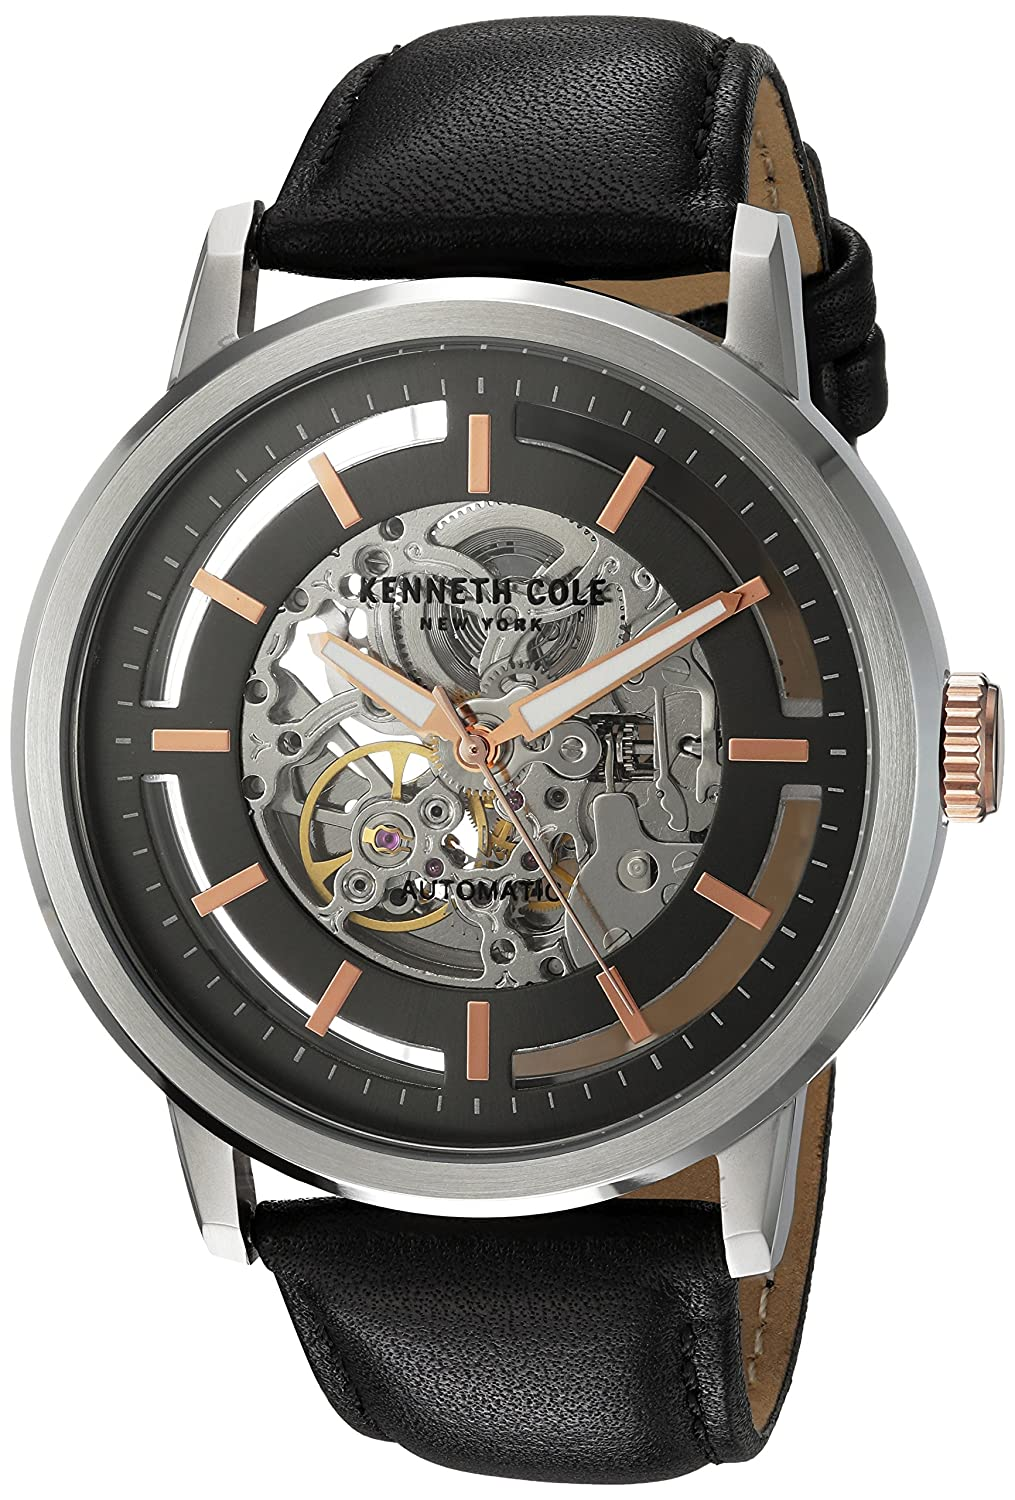 ceca4950f23 Amazon.com  Kenneth Cole New York Men s 10026782 Automatic Analog Display  Japanese Automatic Black Watch  Watches